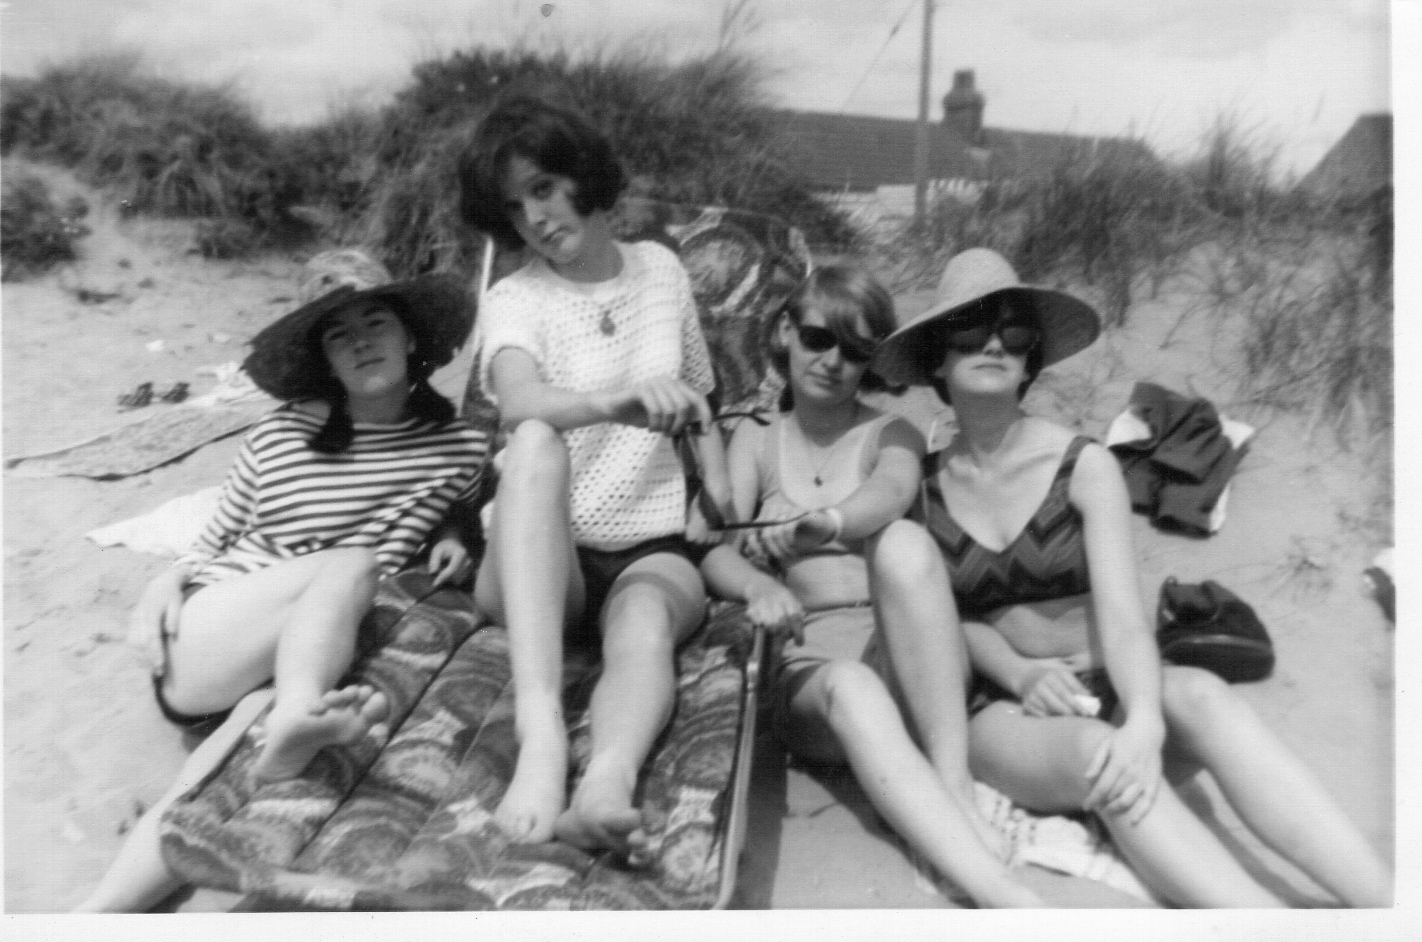 Summer 1965 Fairbourne - outing